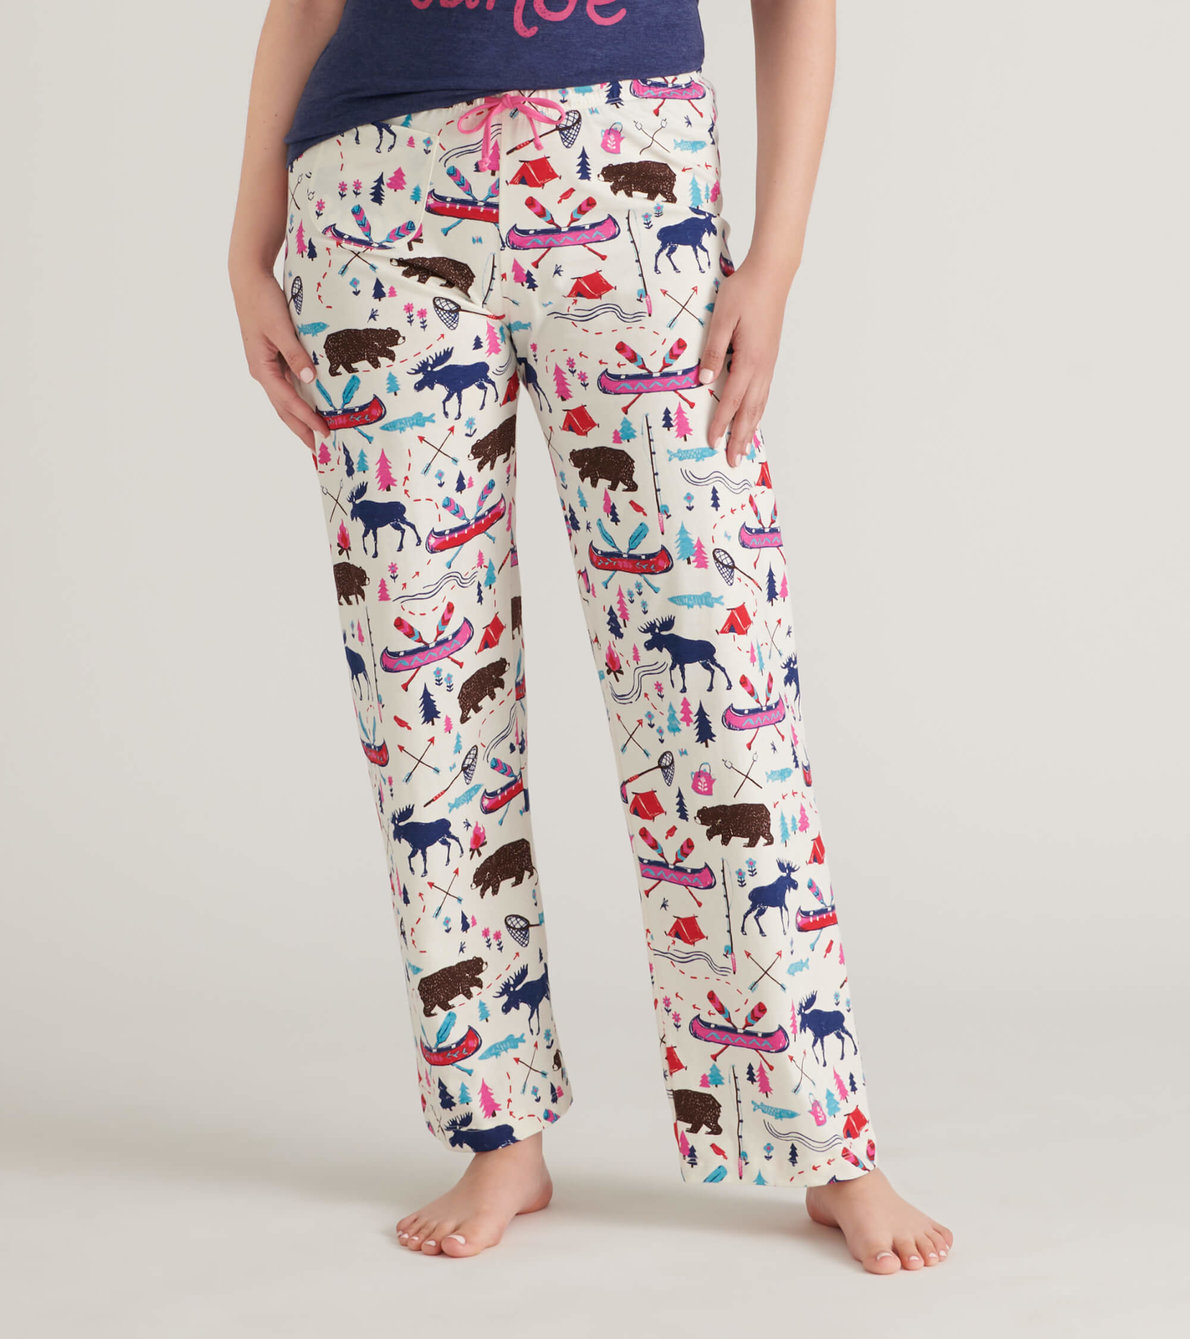 View larger image of Pretty Sketch Country Women's Jersey Pajama Pants